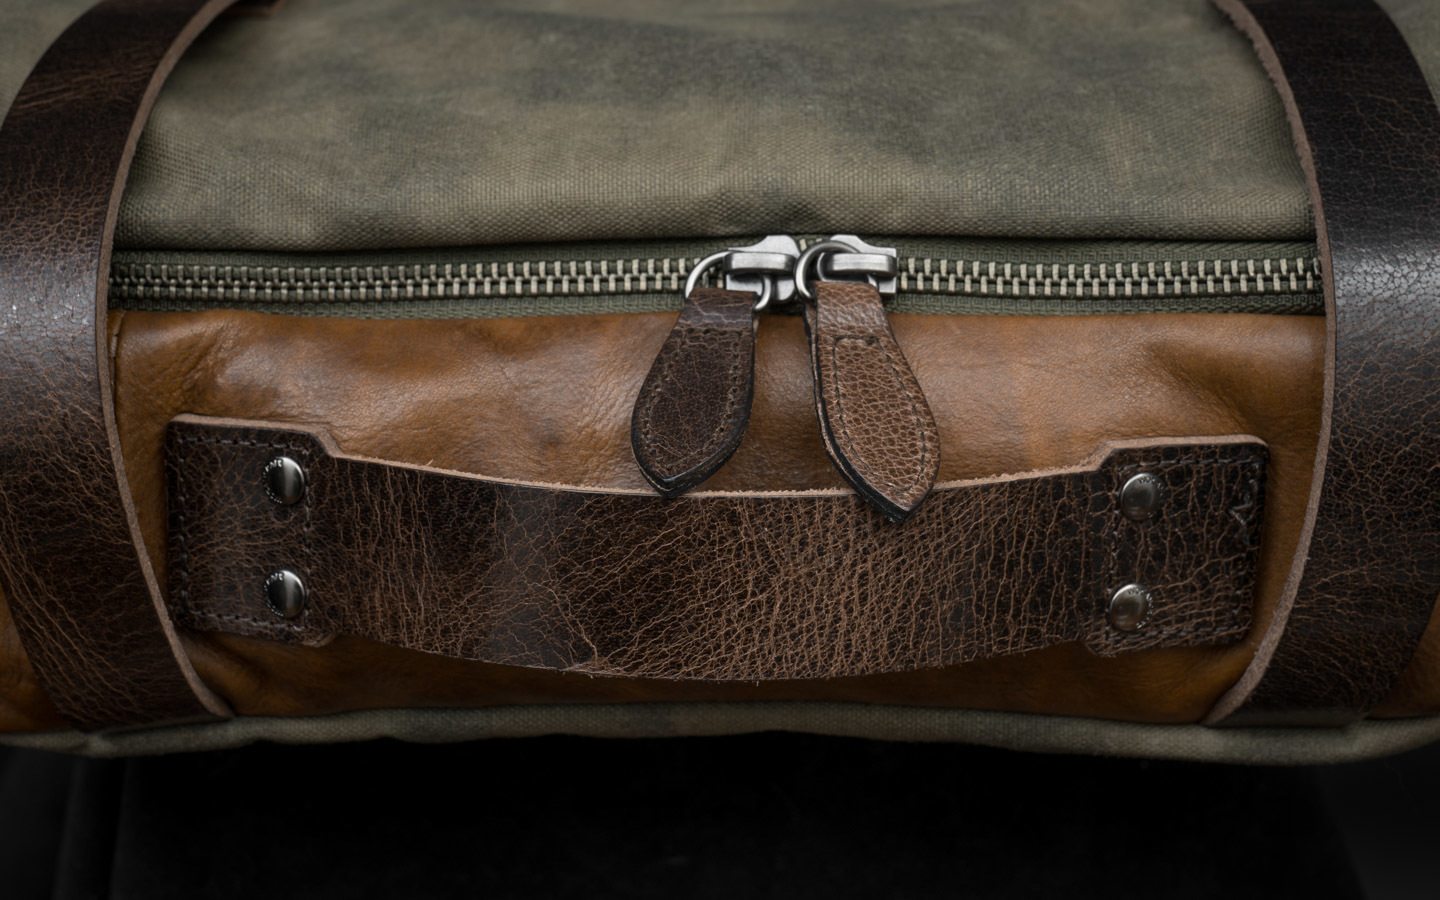 Battle-distressed cowhide leather.